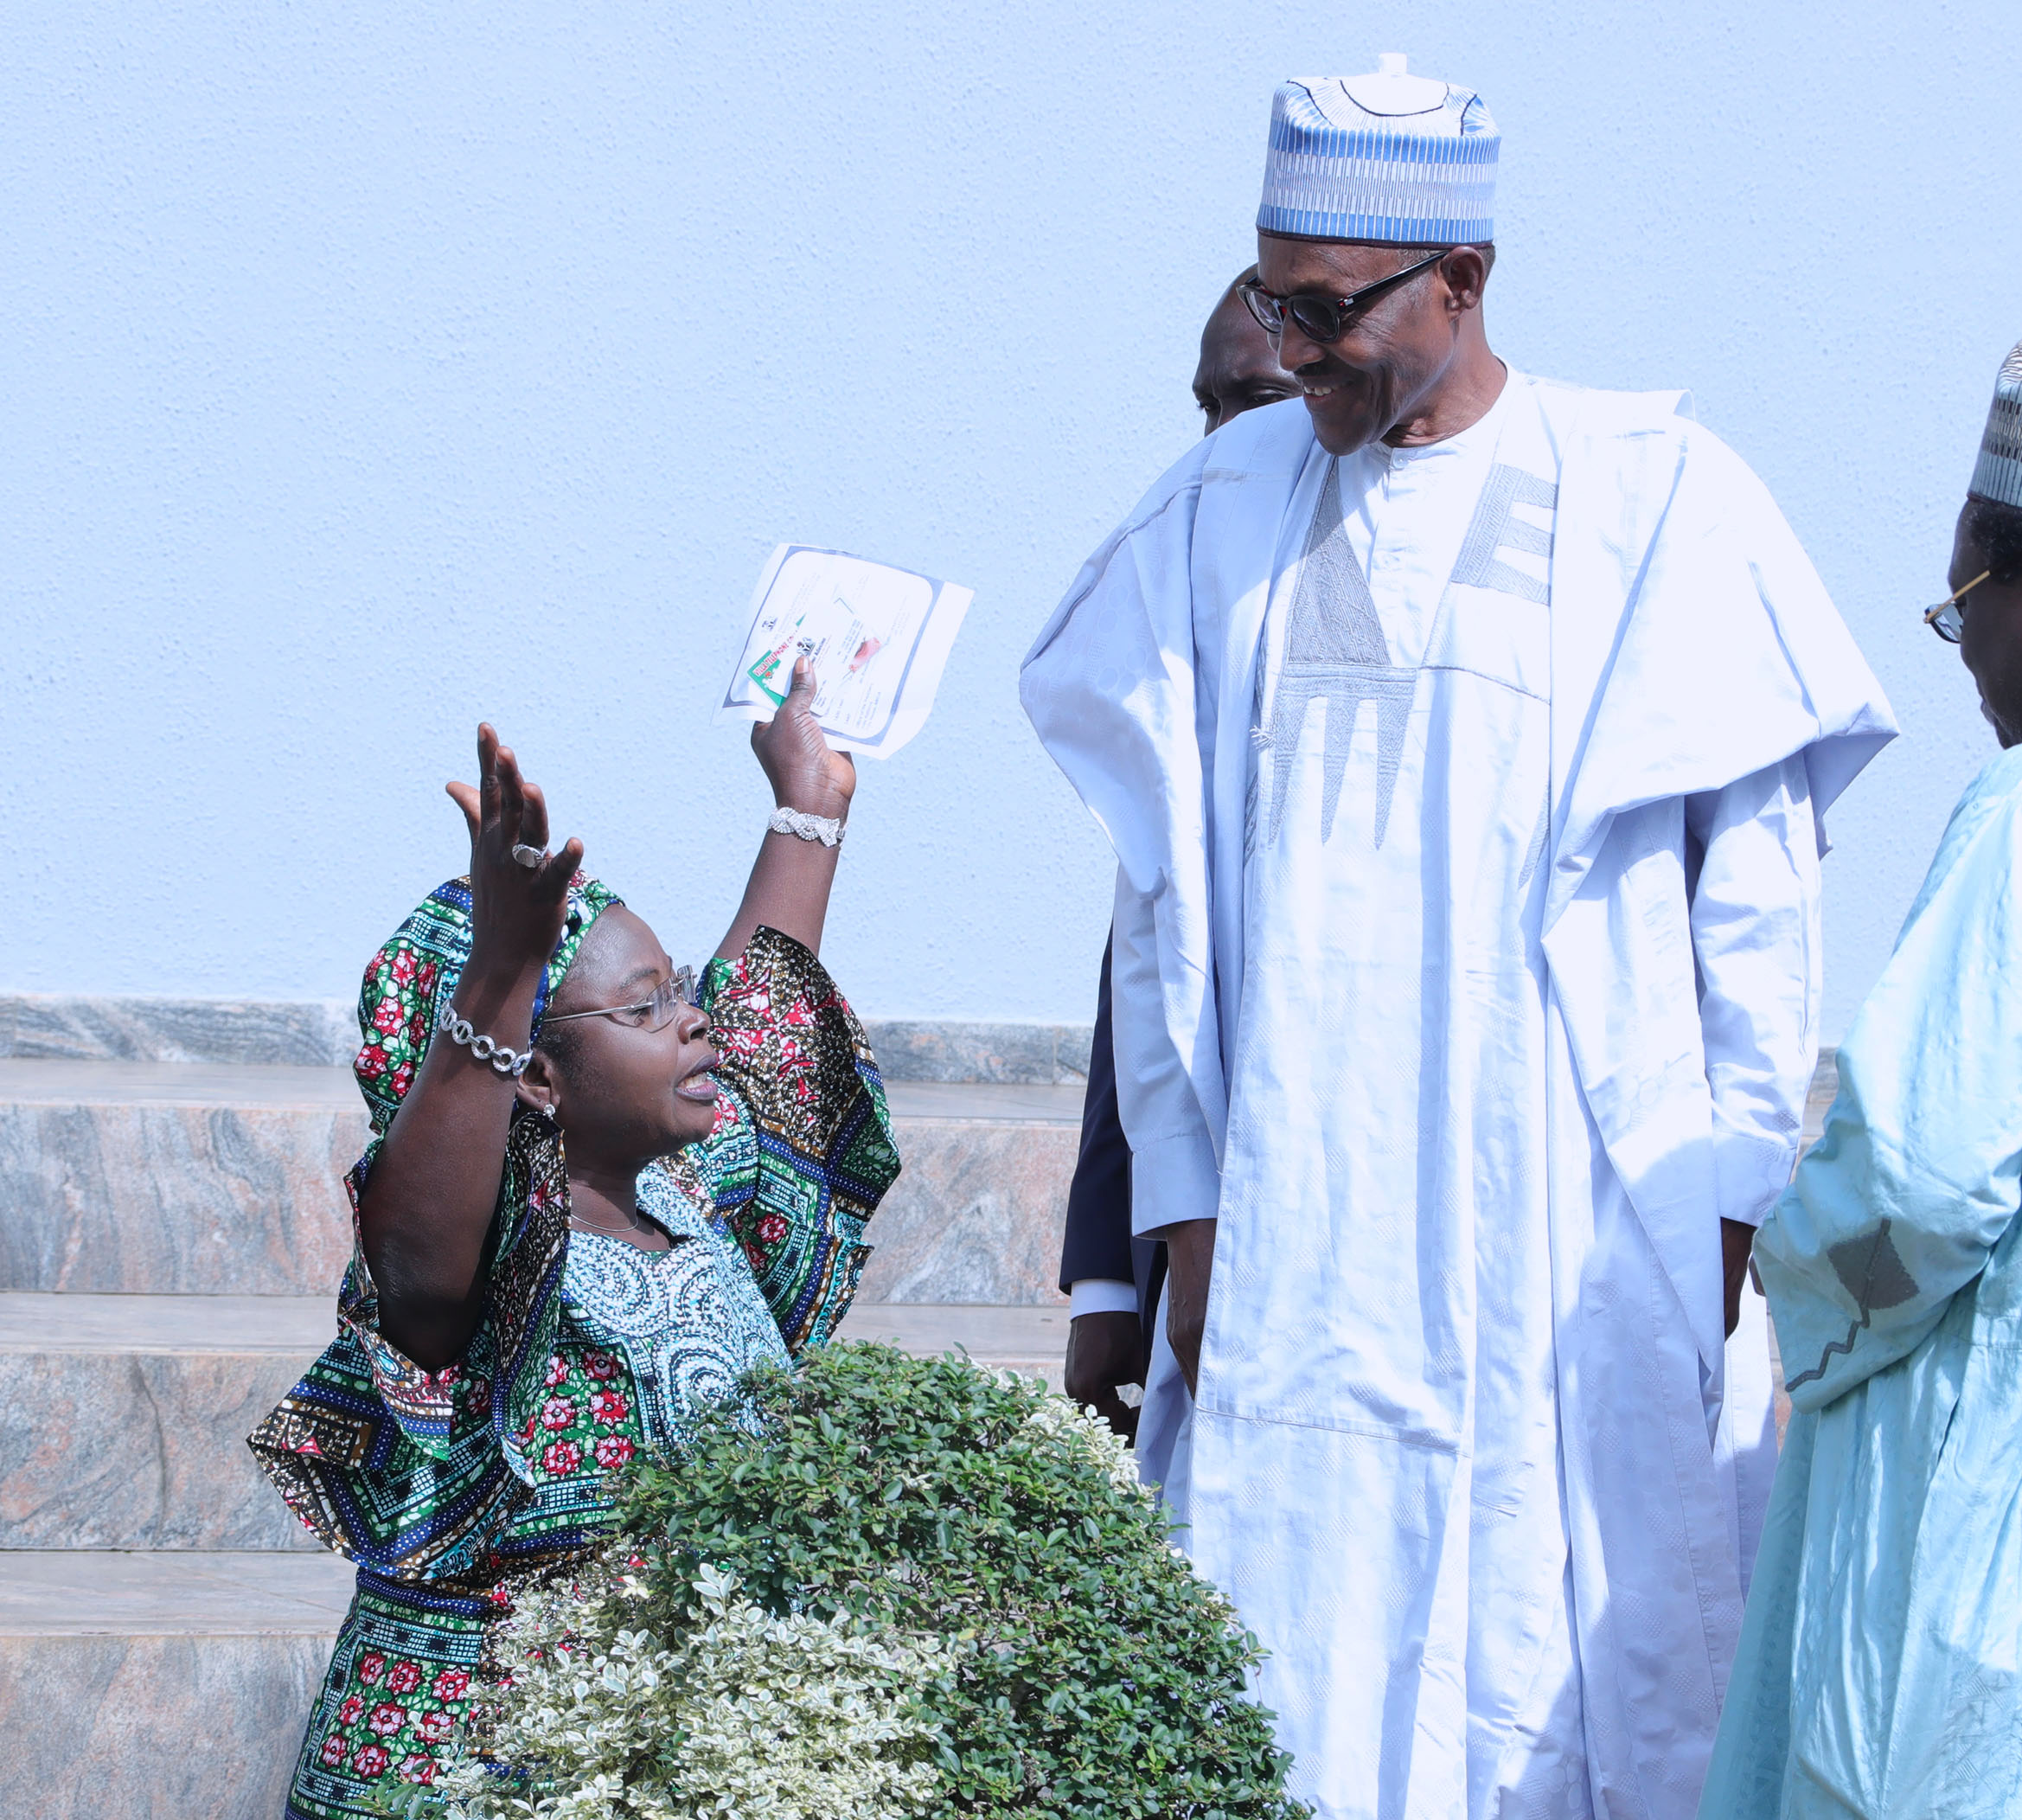 Herdsmen killings: Buhari shows empathy, as Christian woman in tears, kneels, pleads for audience with President